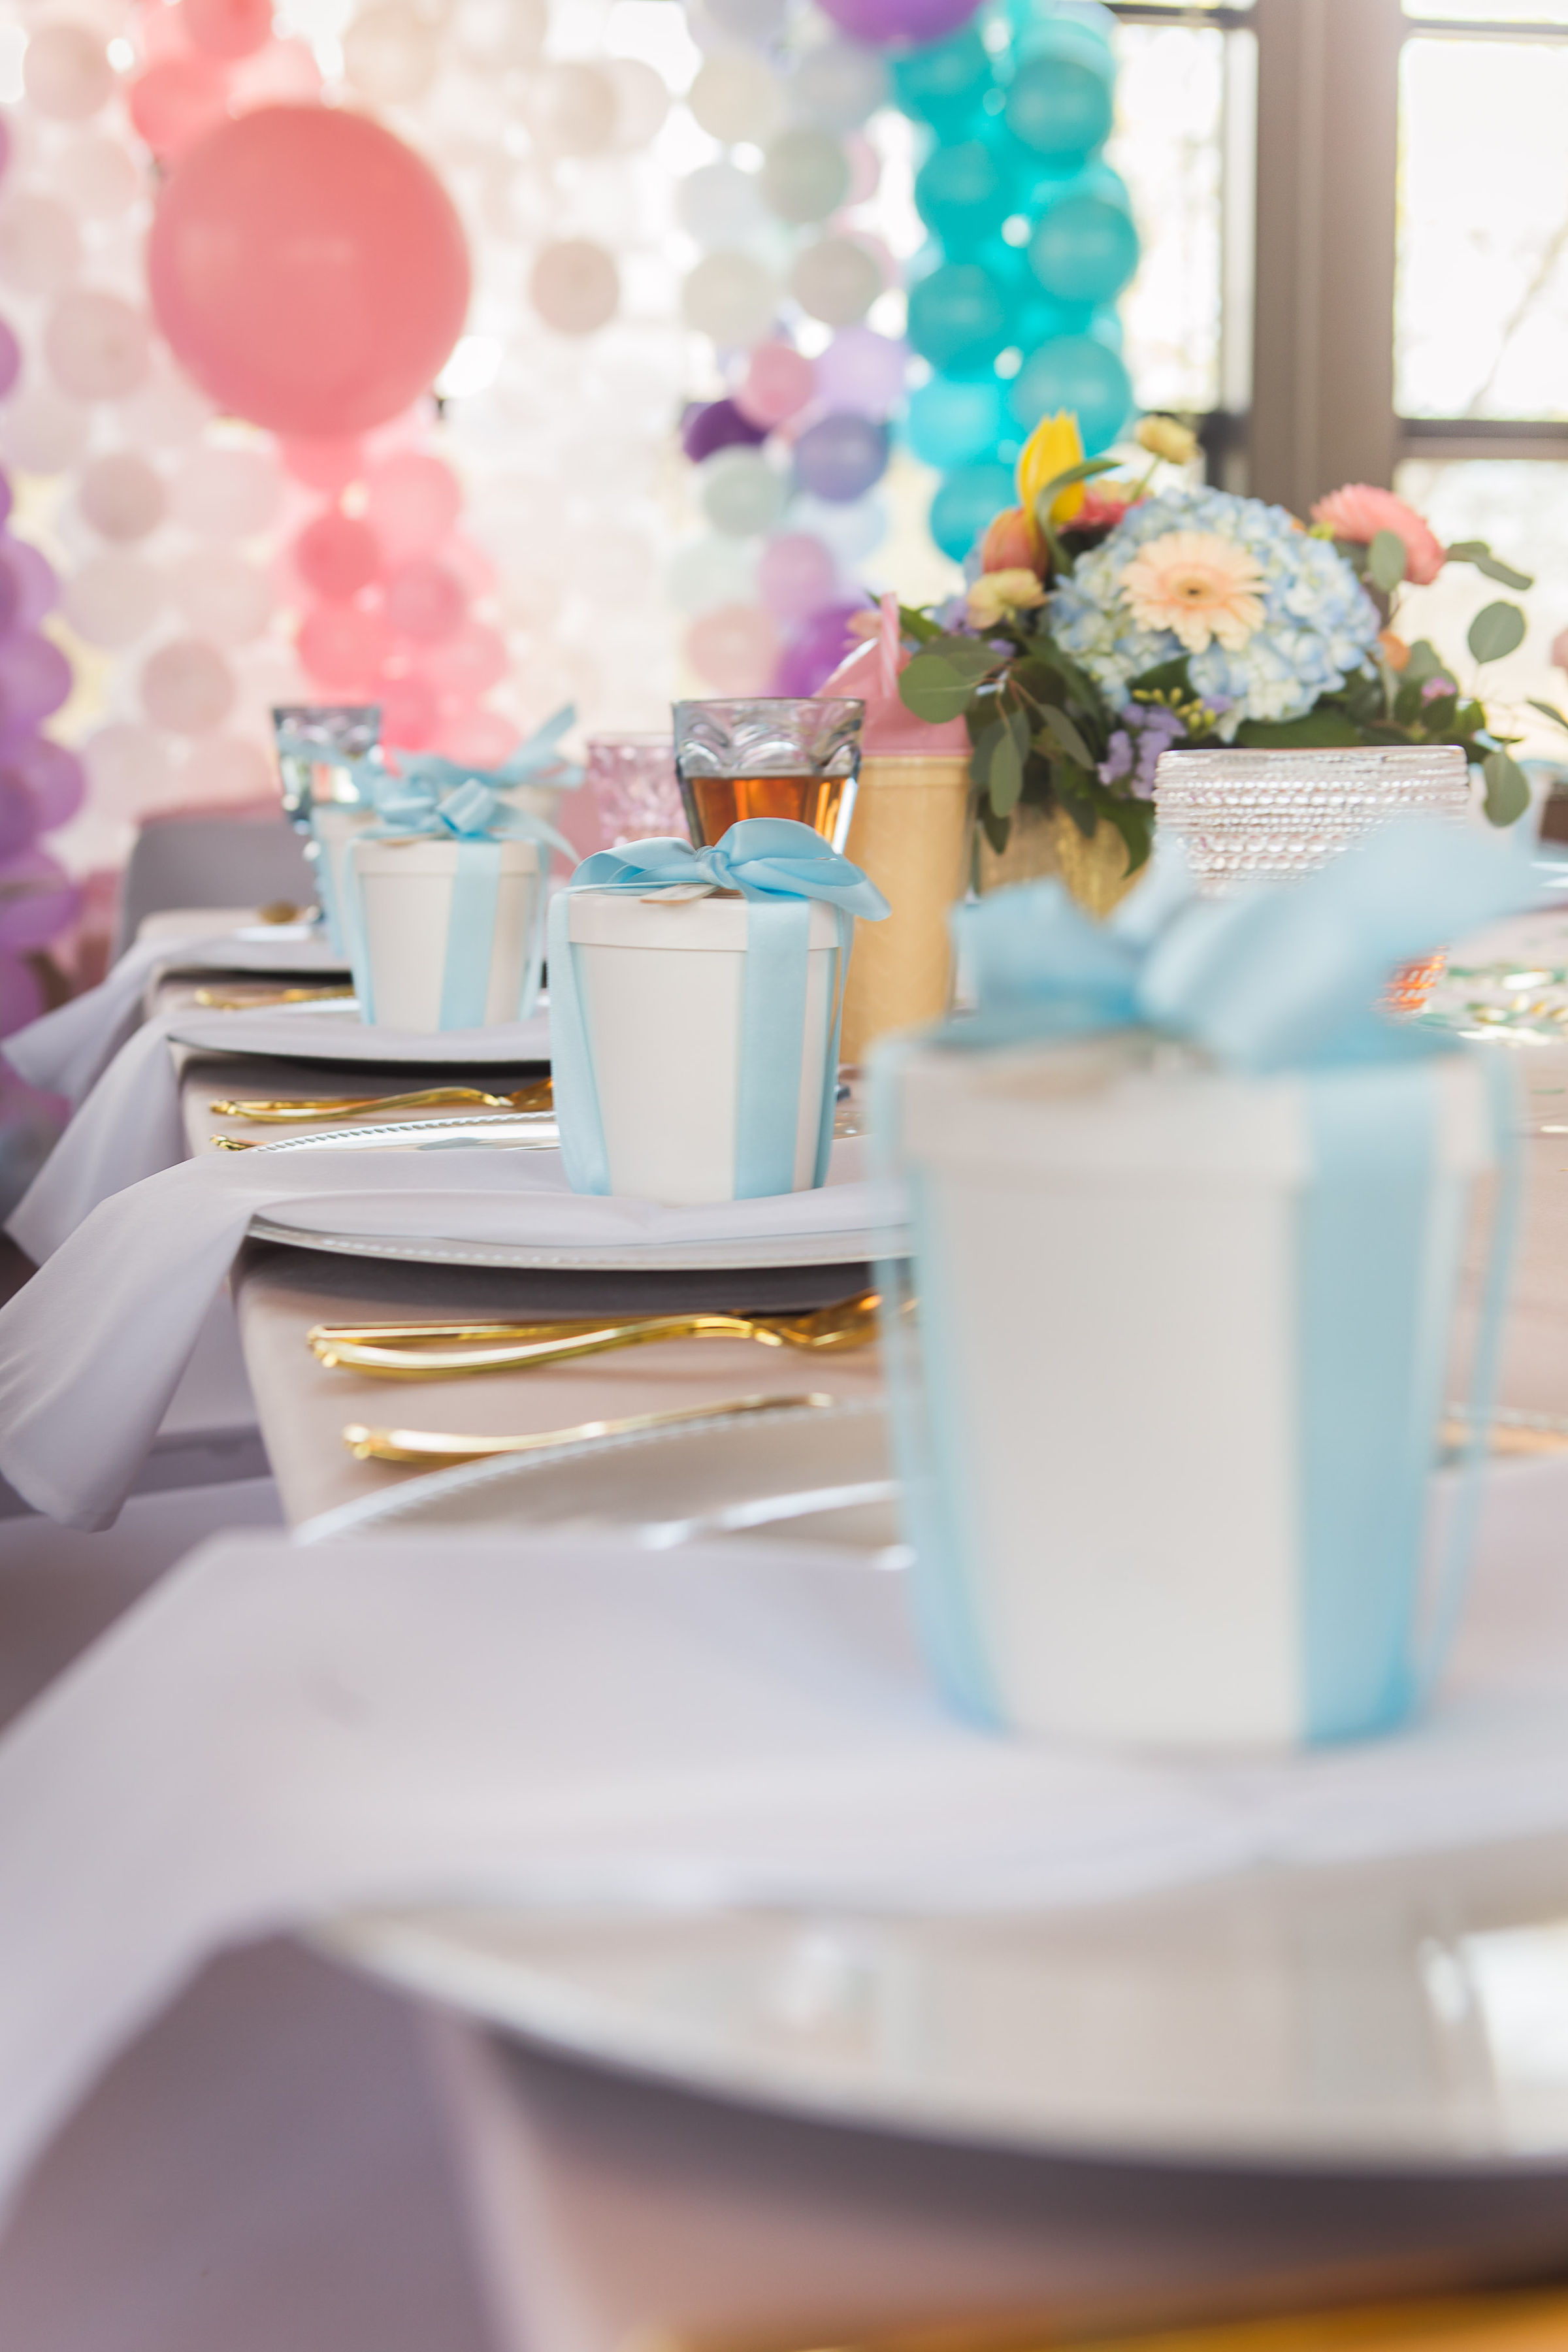 She's-Been-Scooped-Up-Bridal-Shower-Event-Prep-Cassandra-Clair-Love-is-Greater-Photography-16.jpg